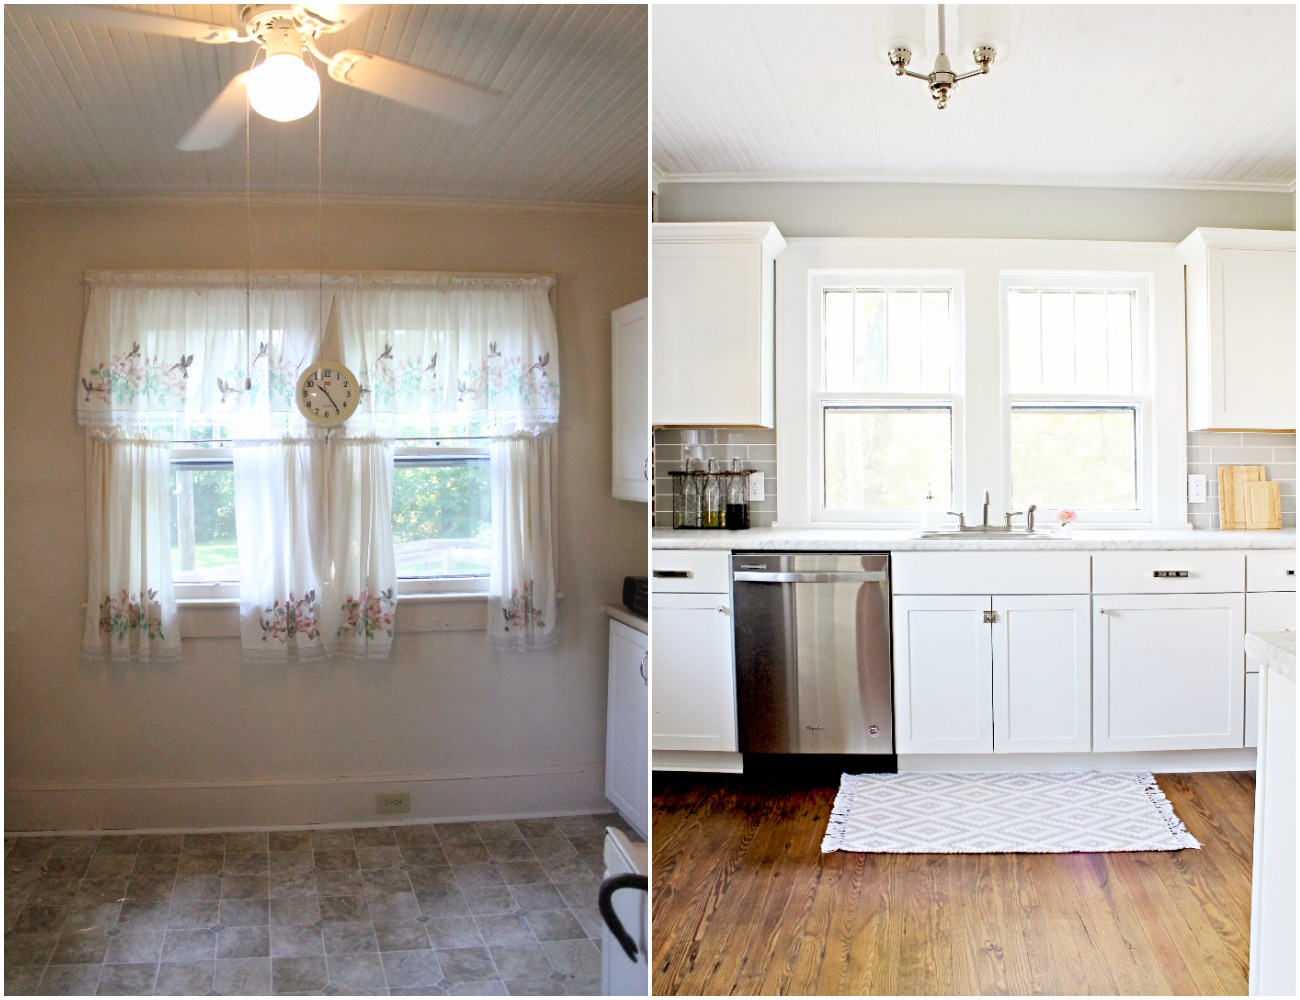 House Flipping Before and Afters - Budget Kitchen Renovation, Cheap Cabinets, Cheap Countertops - Sherwin Williams Silver Strand 24